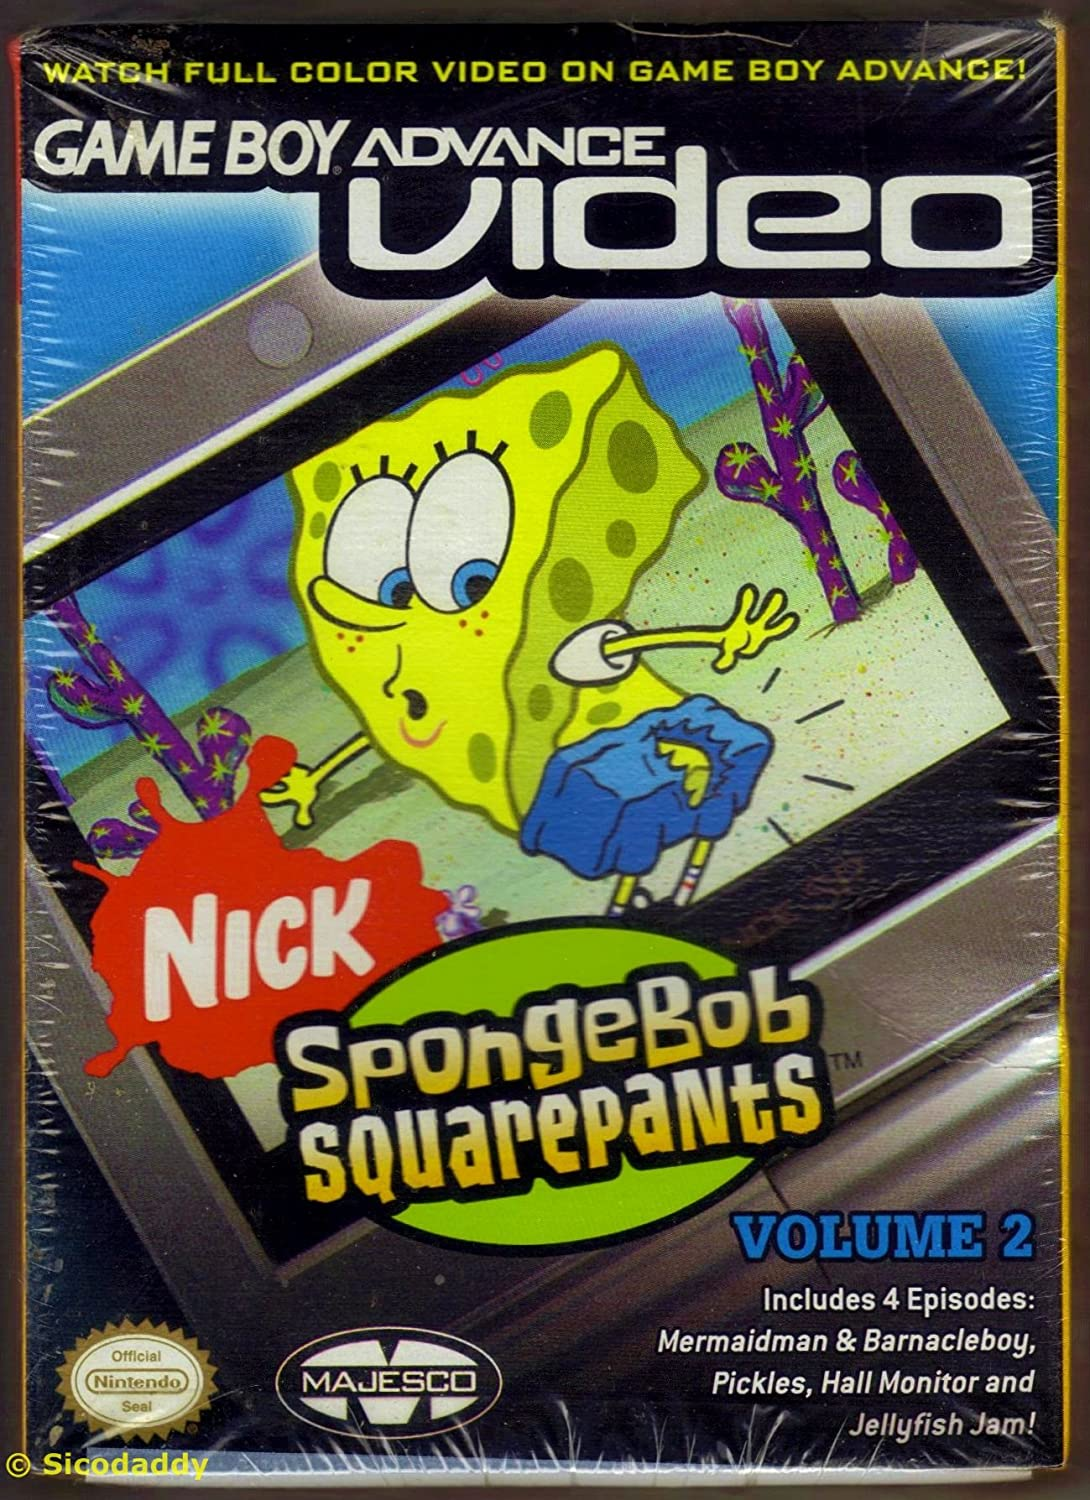 File:Gbavideo spongebobvol02.jpg